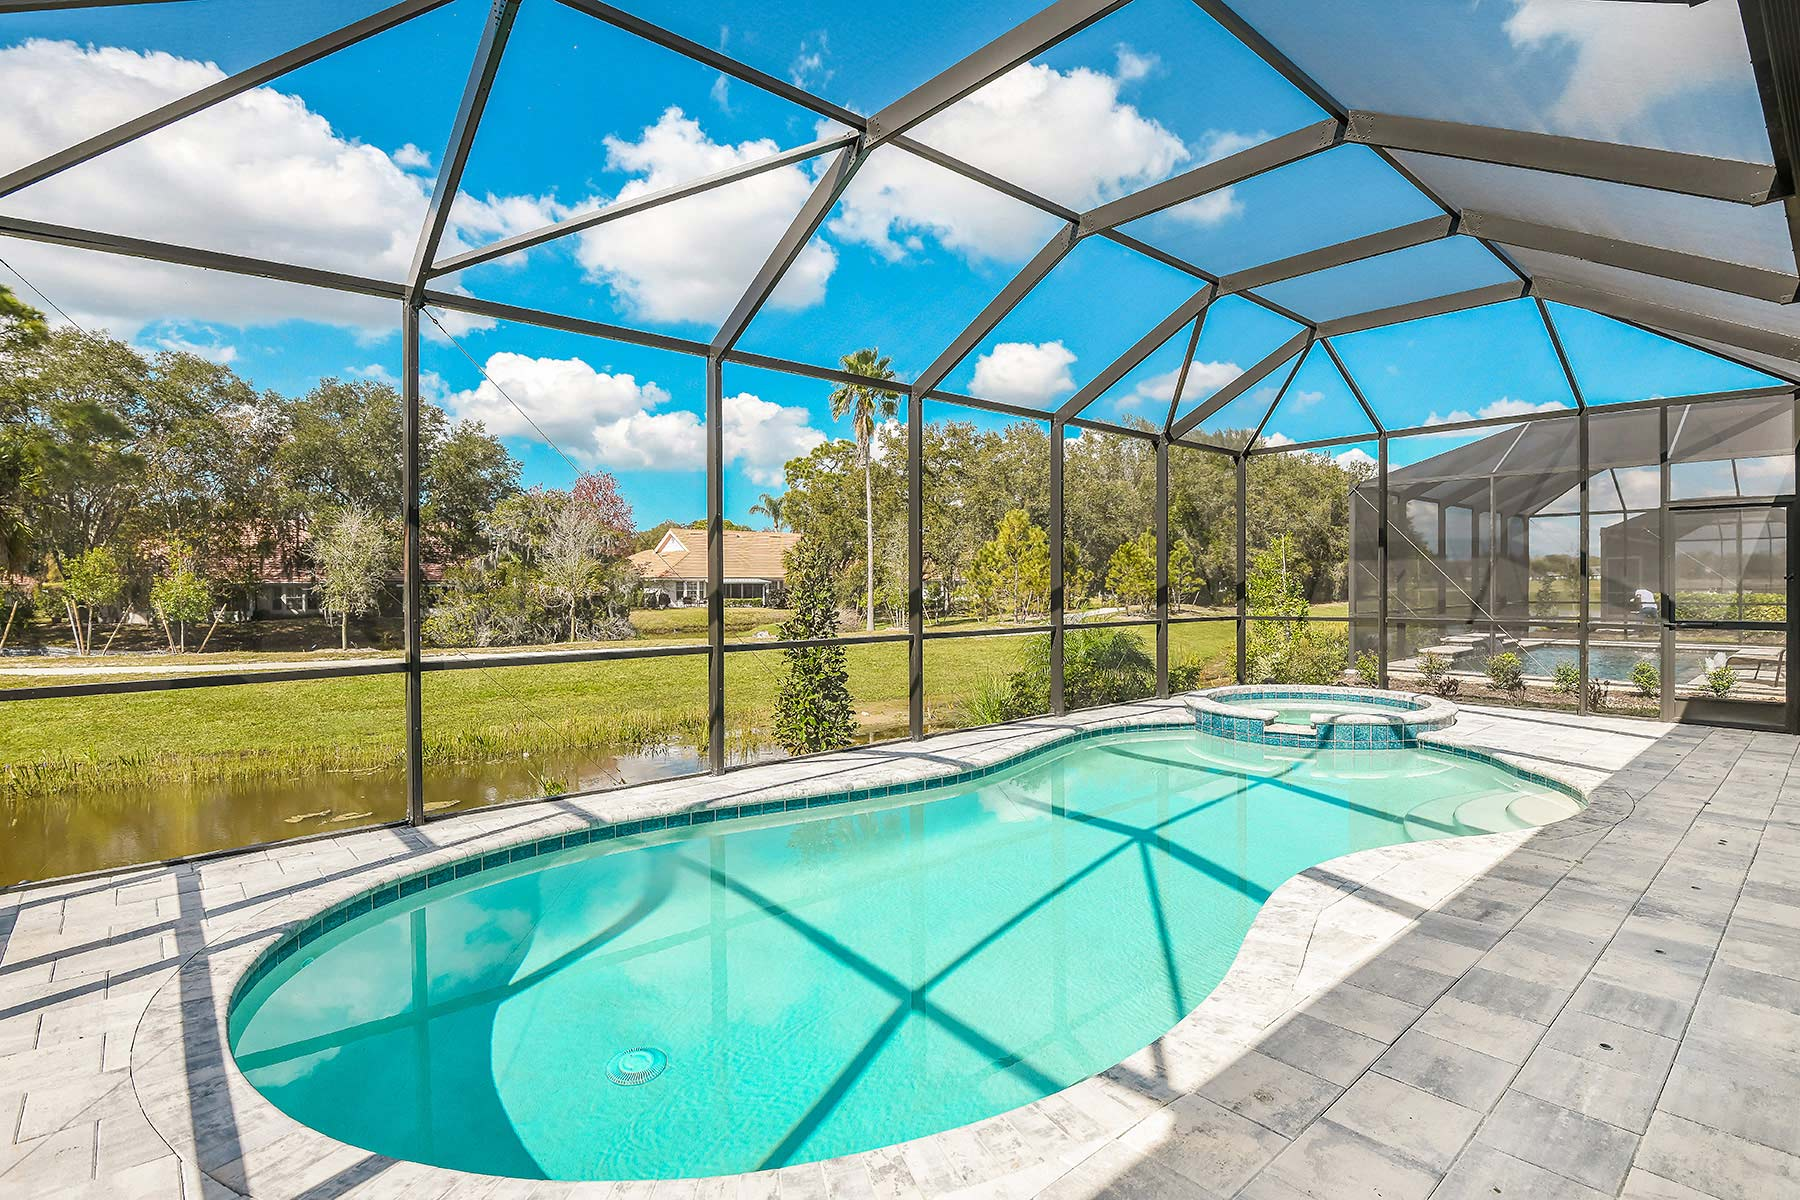 Dayspring Plan WaterFeatures at Sunrise Preserve at Palmer Ranch in Sarasota Florida by Mattamy Homes